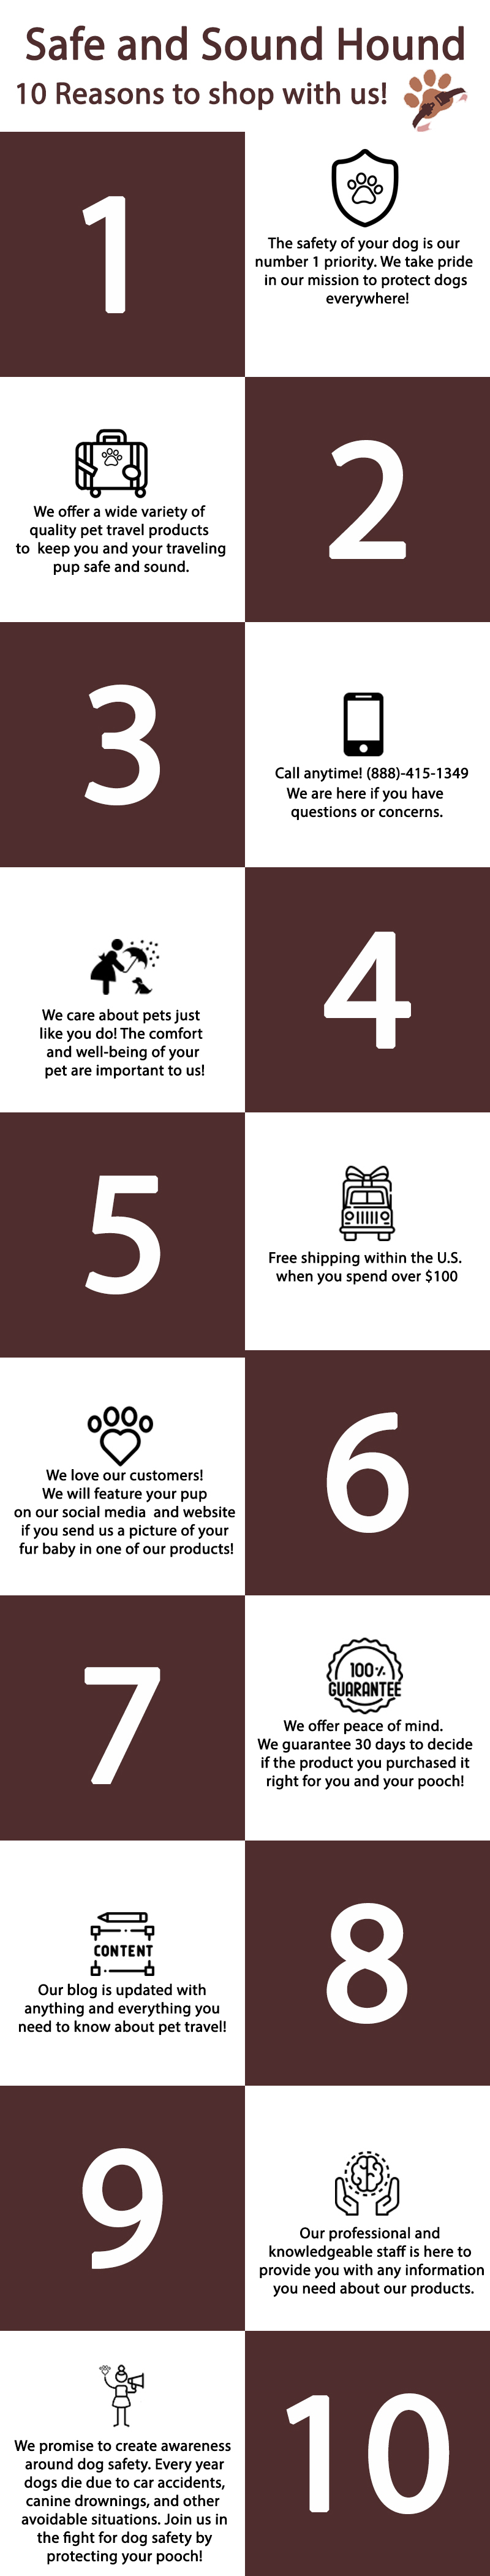 infographic - 10 reasons to shop with us